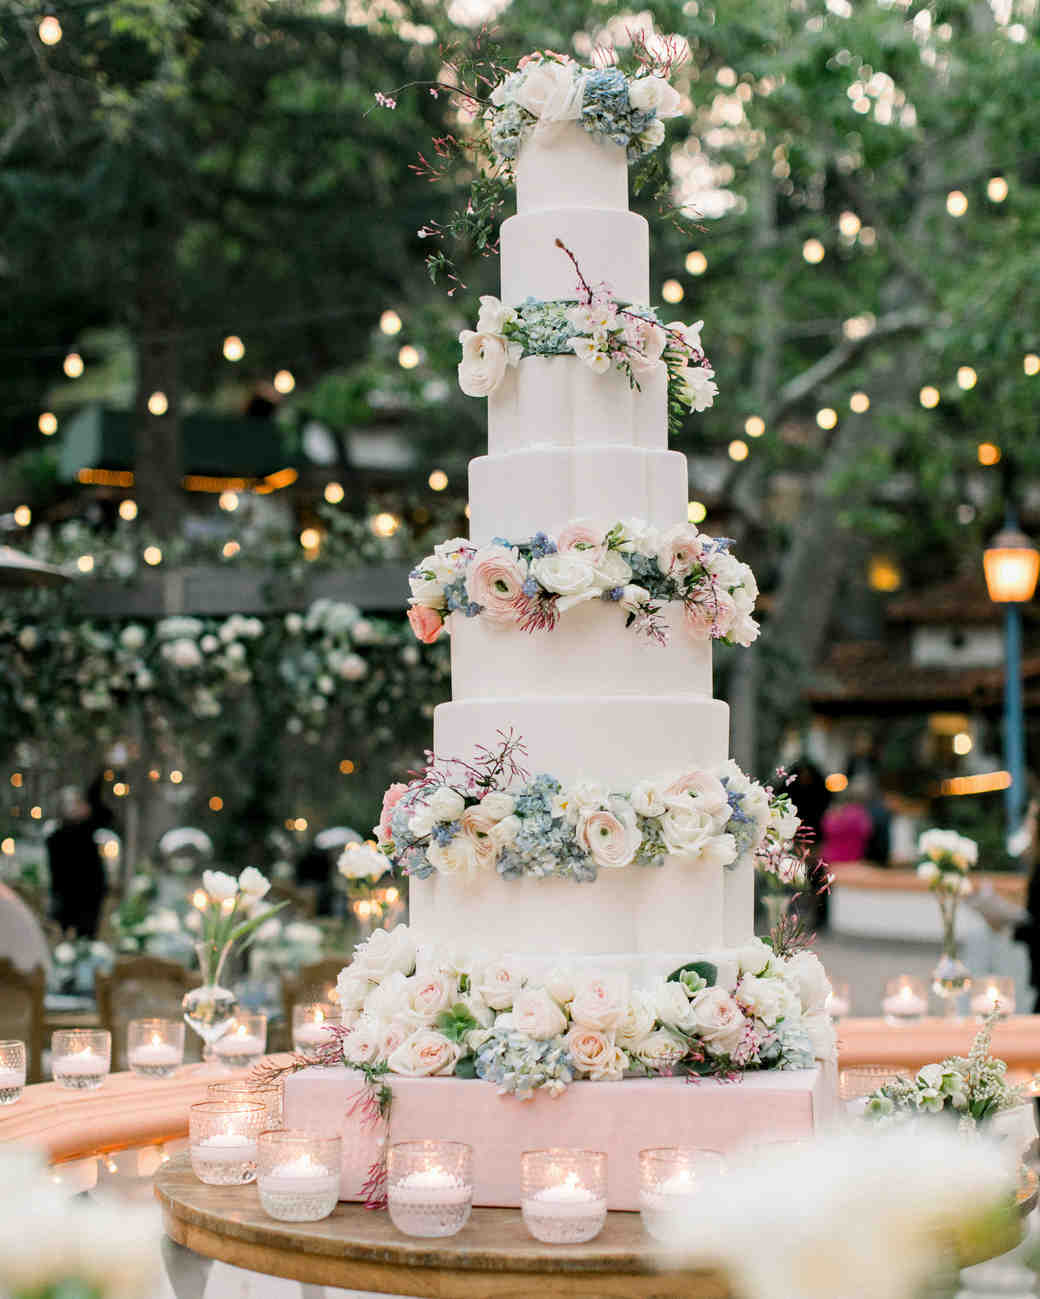 cakes with floral tiers bloom-filled color palette